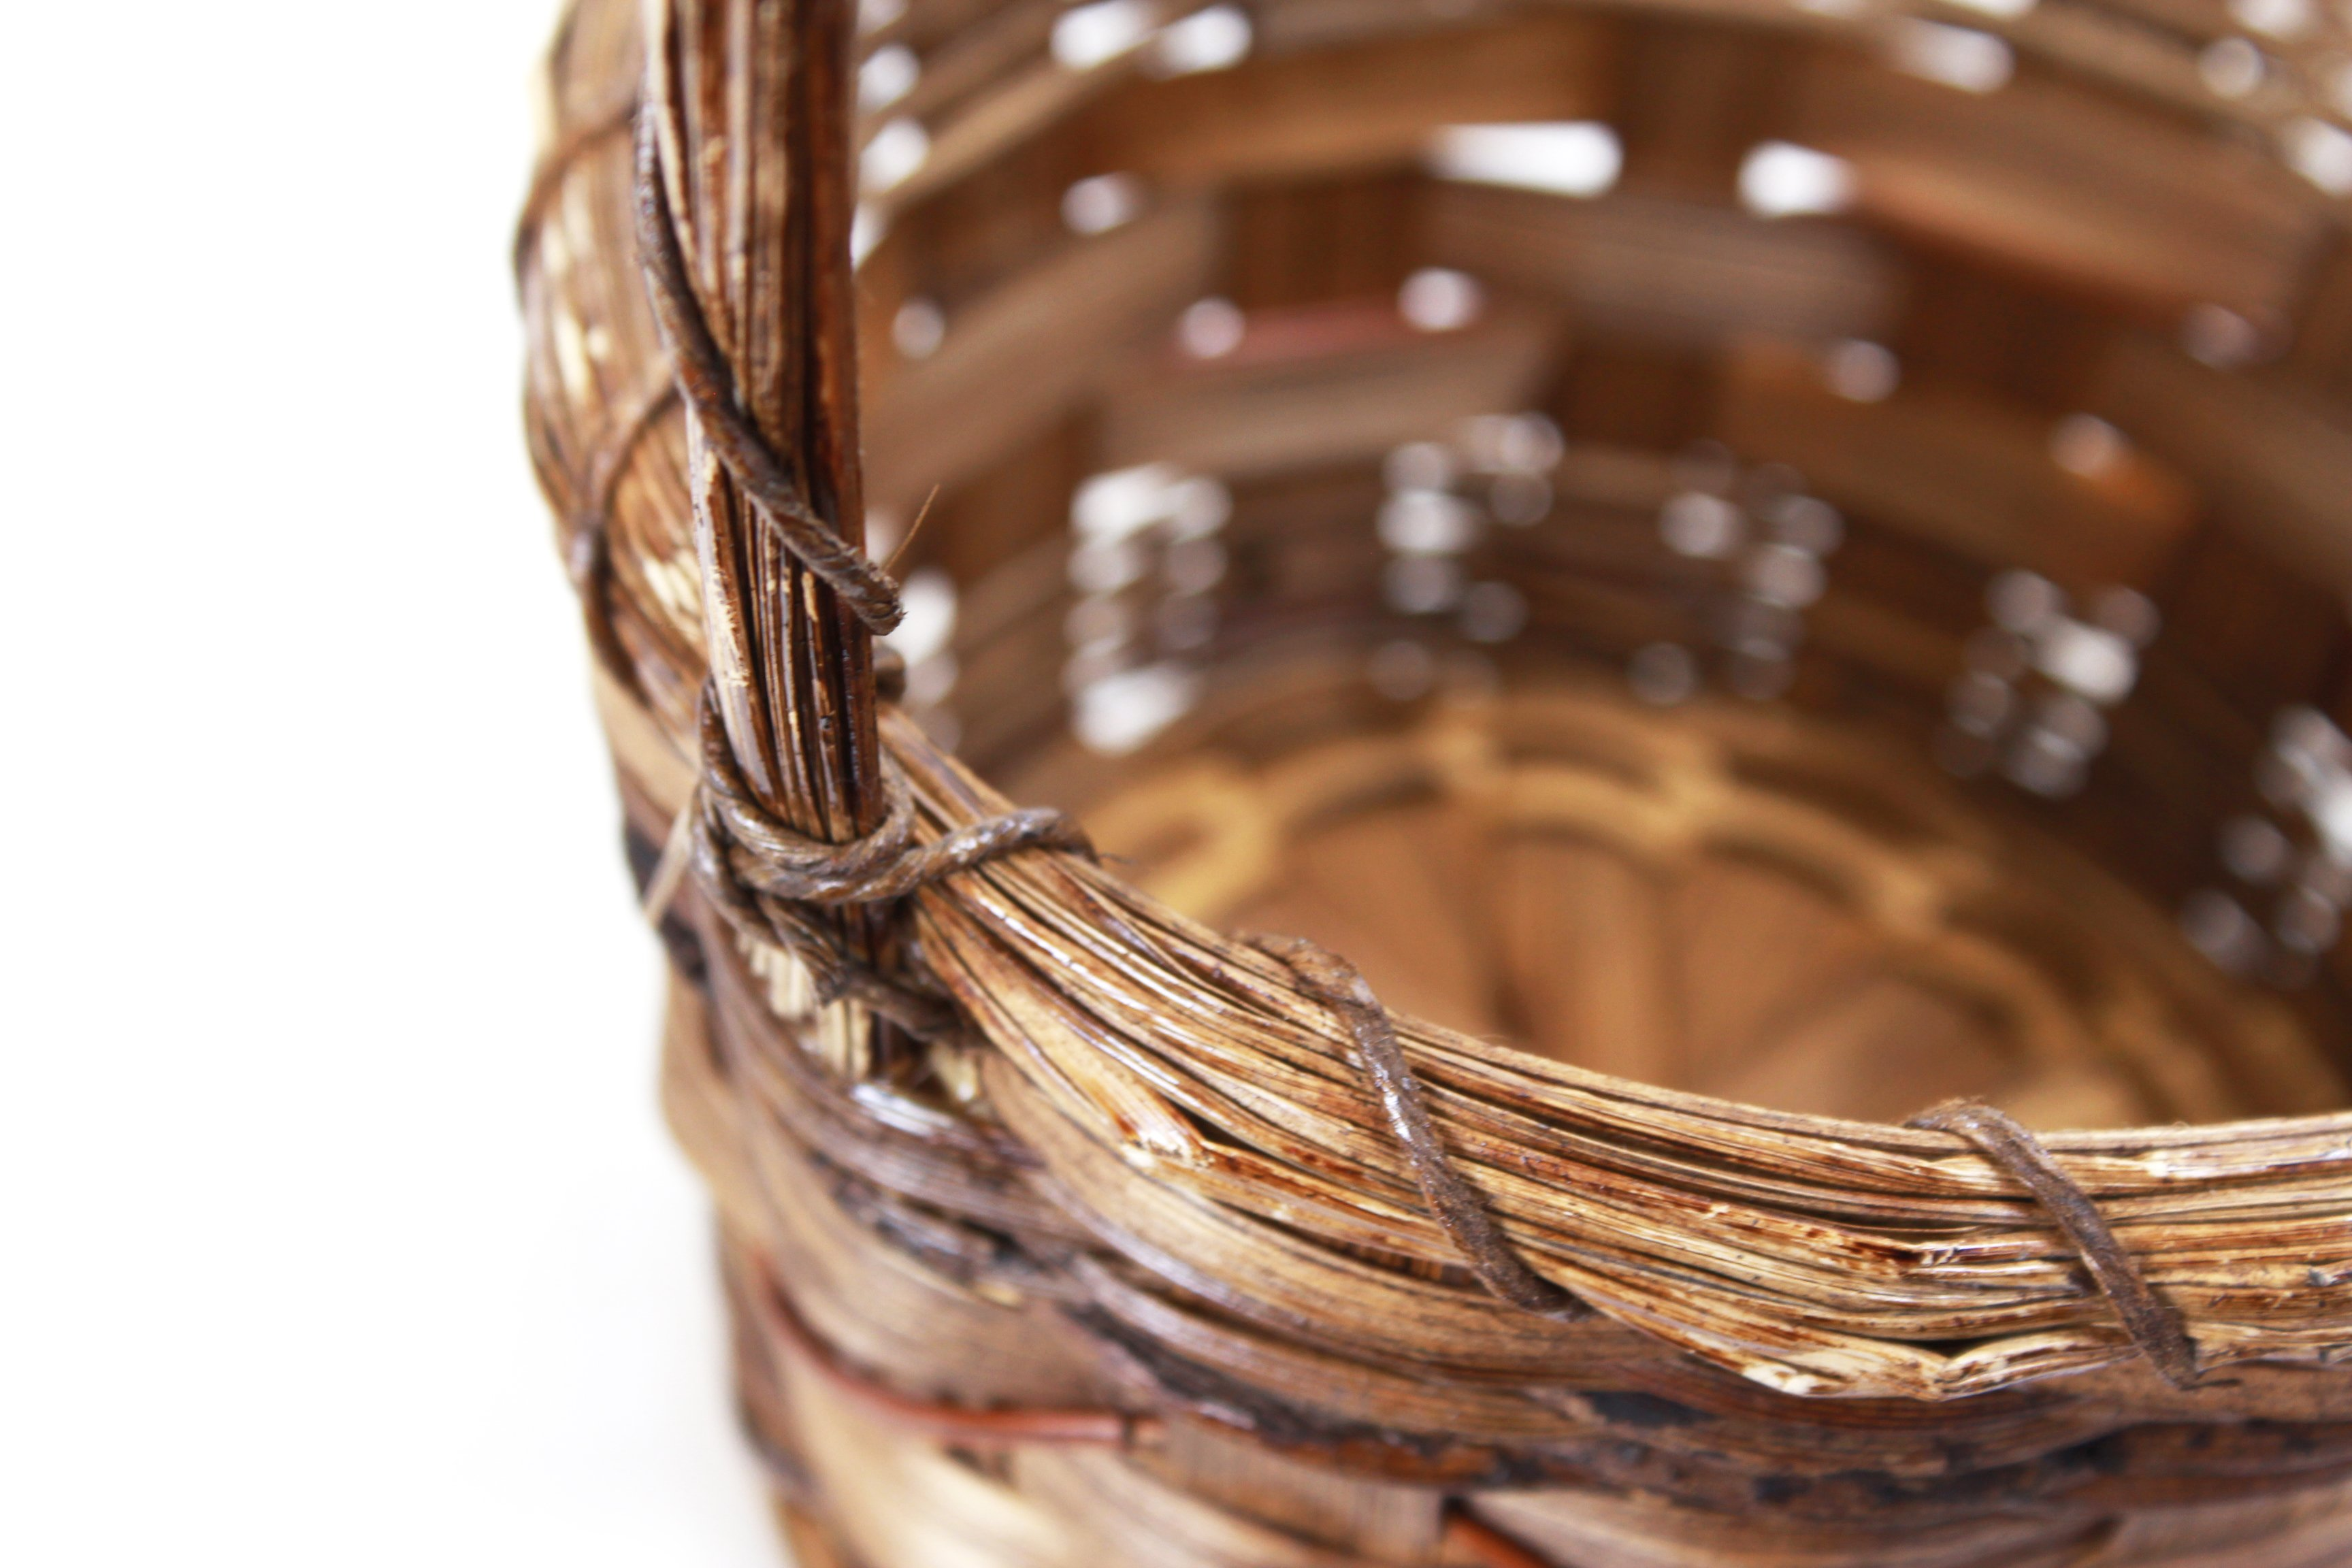 Tone Round Baskets with Handle close-up